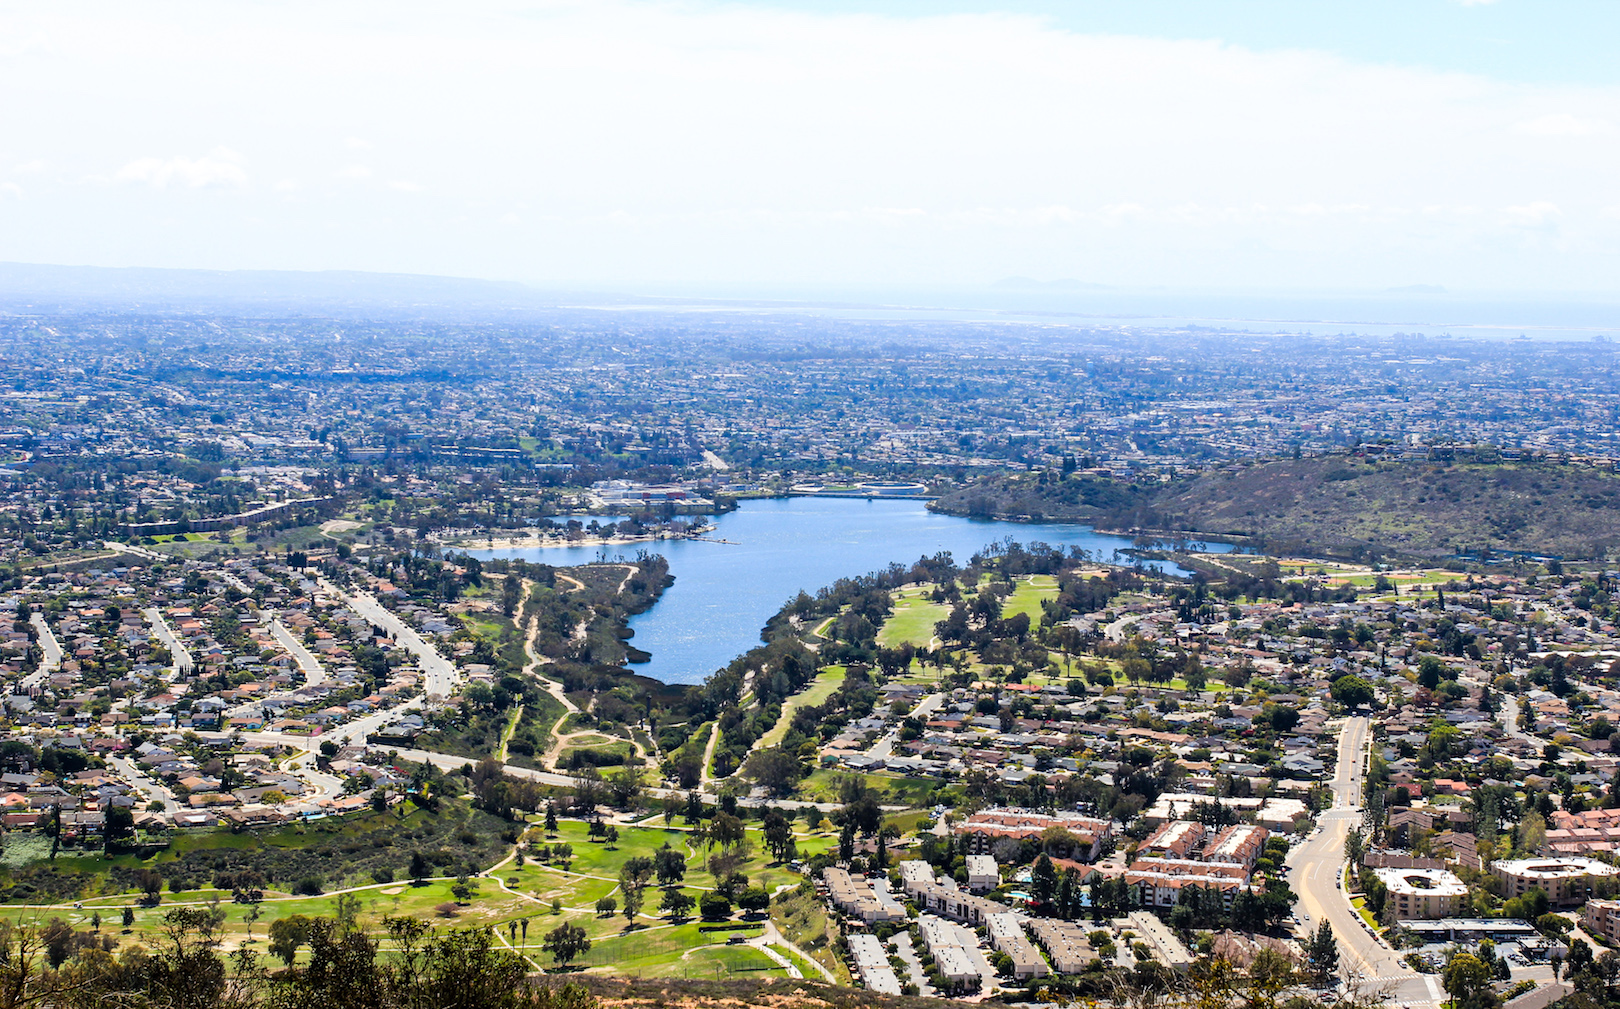 Summit Overlook at Cowles Mountain in San Diego, CA